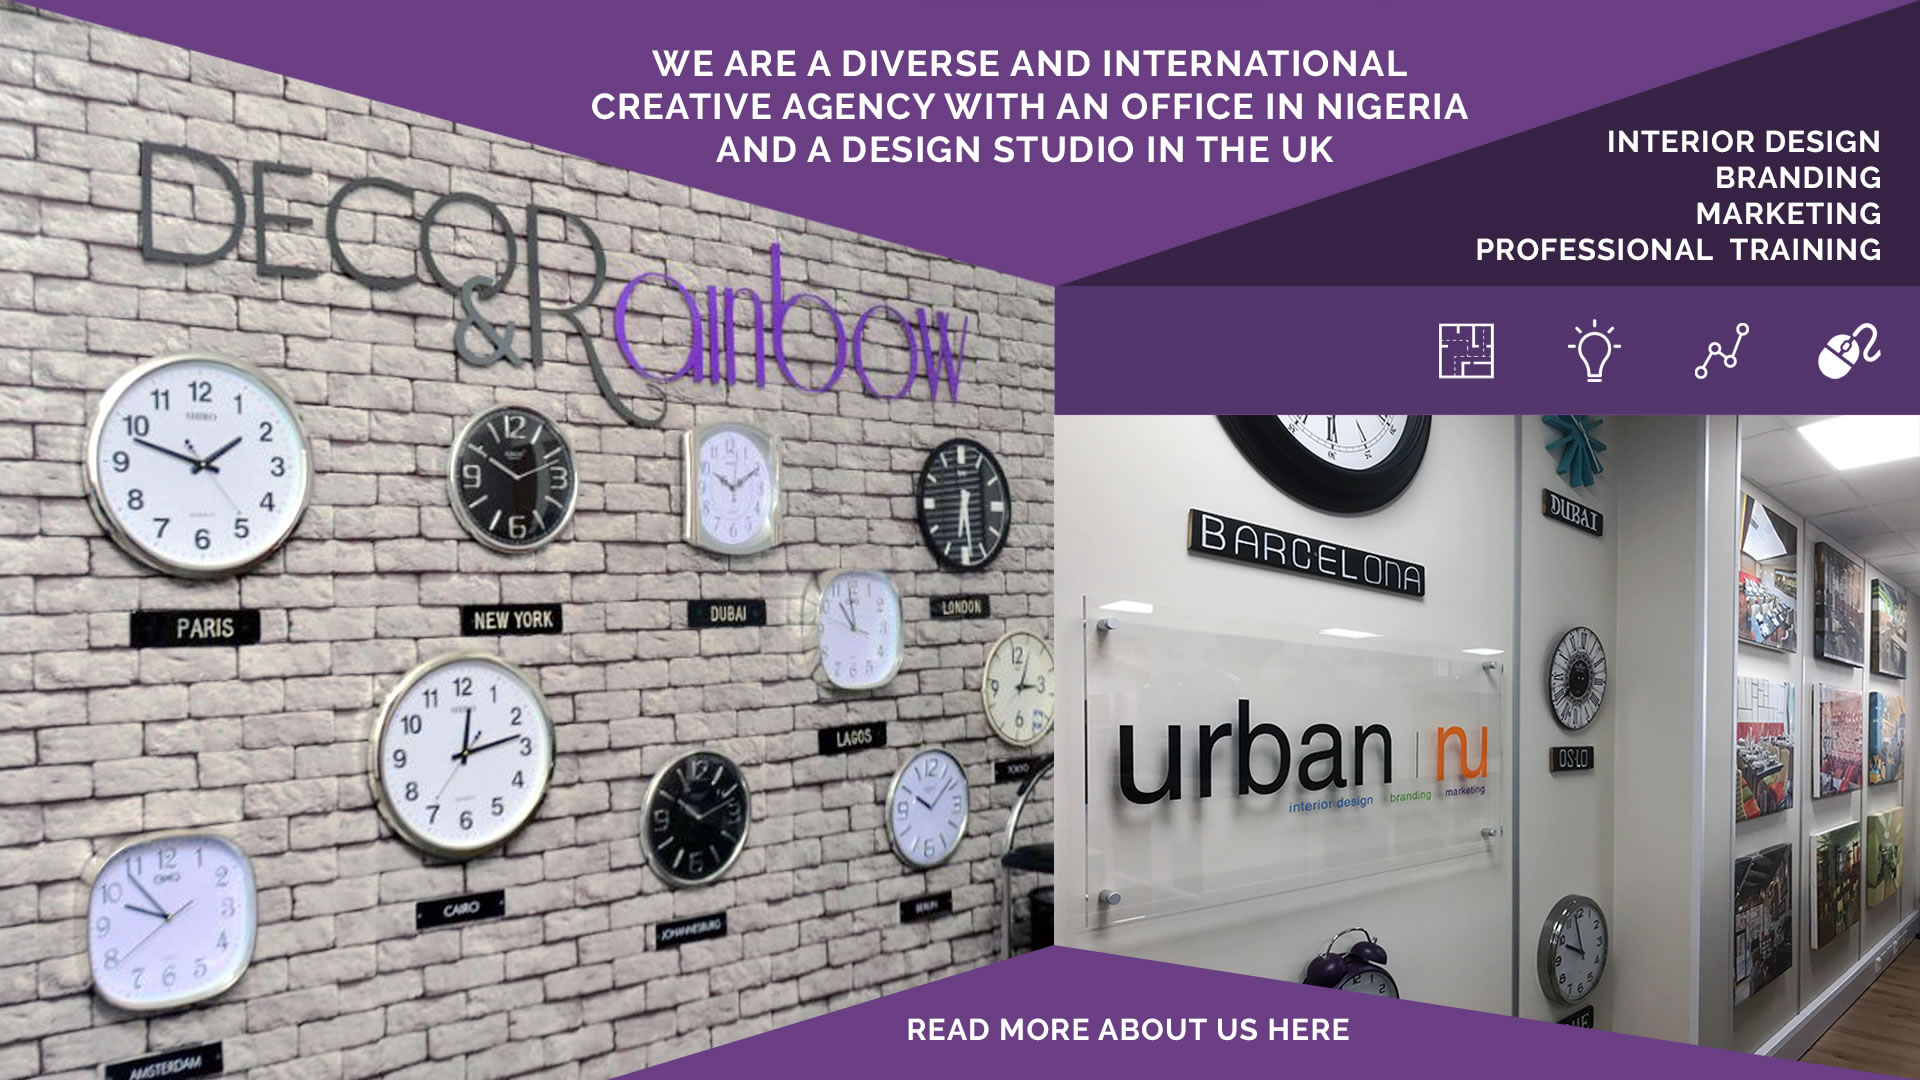 Decor and Rainbow - We are a diverse and International creative agency with an office in Nigeria and a design studio in the UK. Interior Design. Branding. Marketing. Professional Training.. Read more about us here.